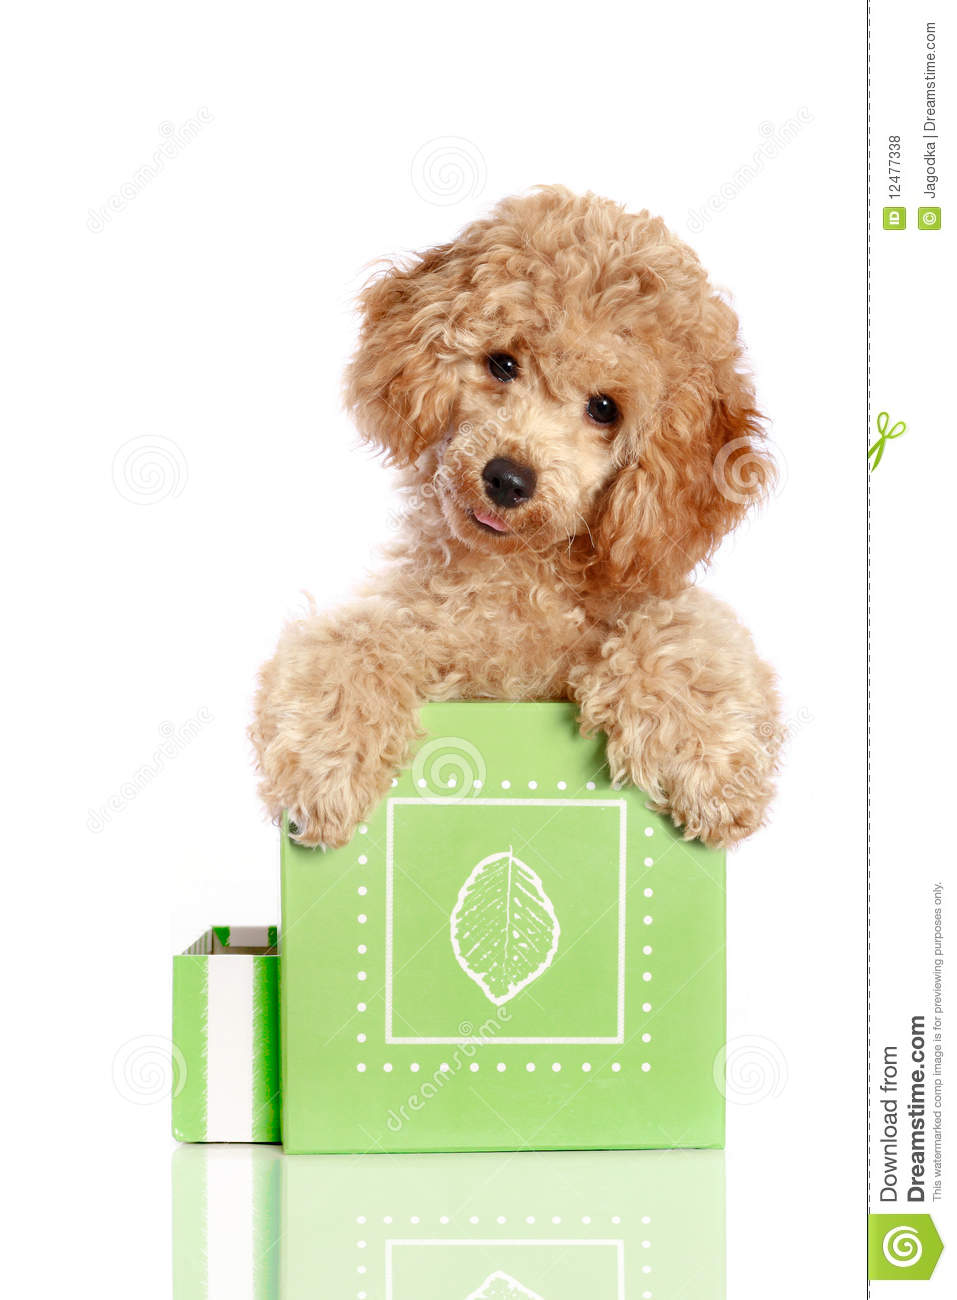 Small apricot poodle puppy is in a gift box